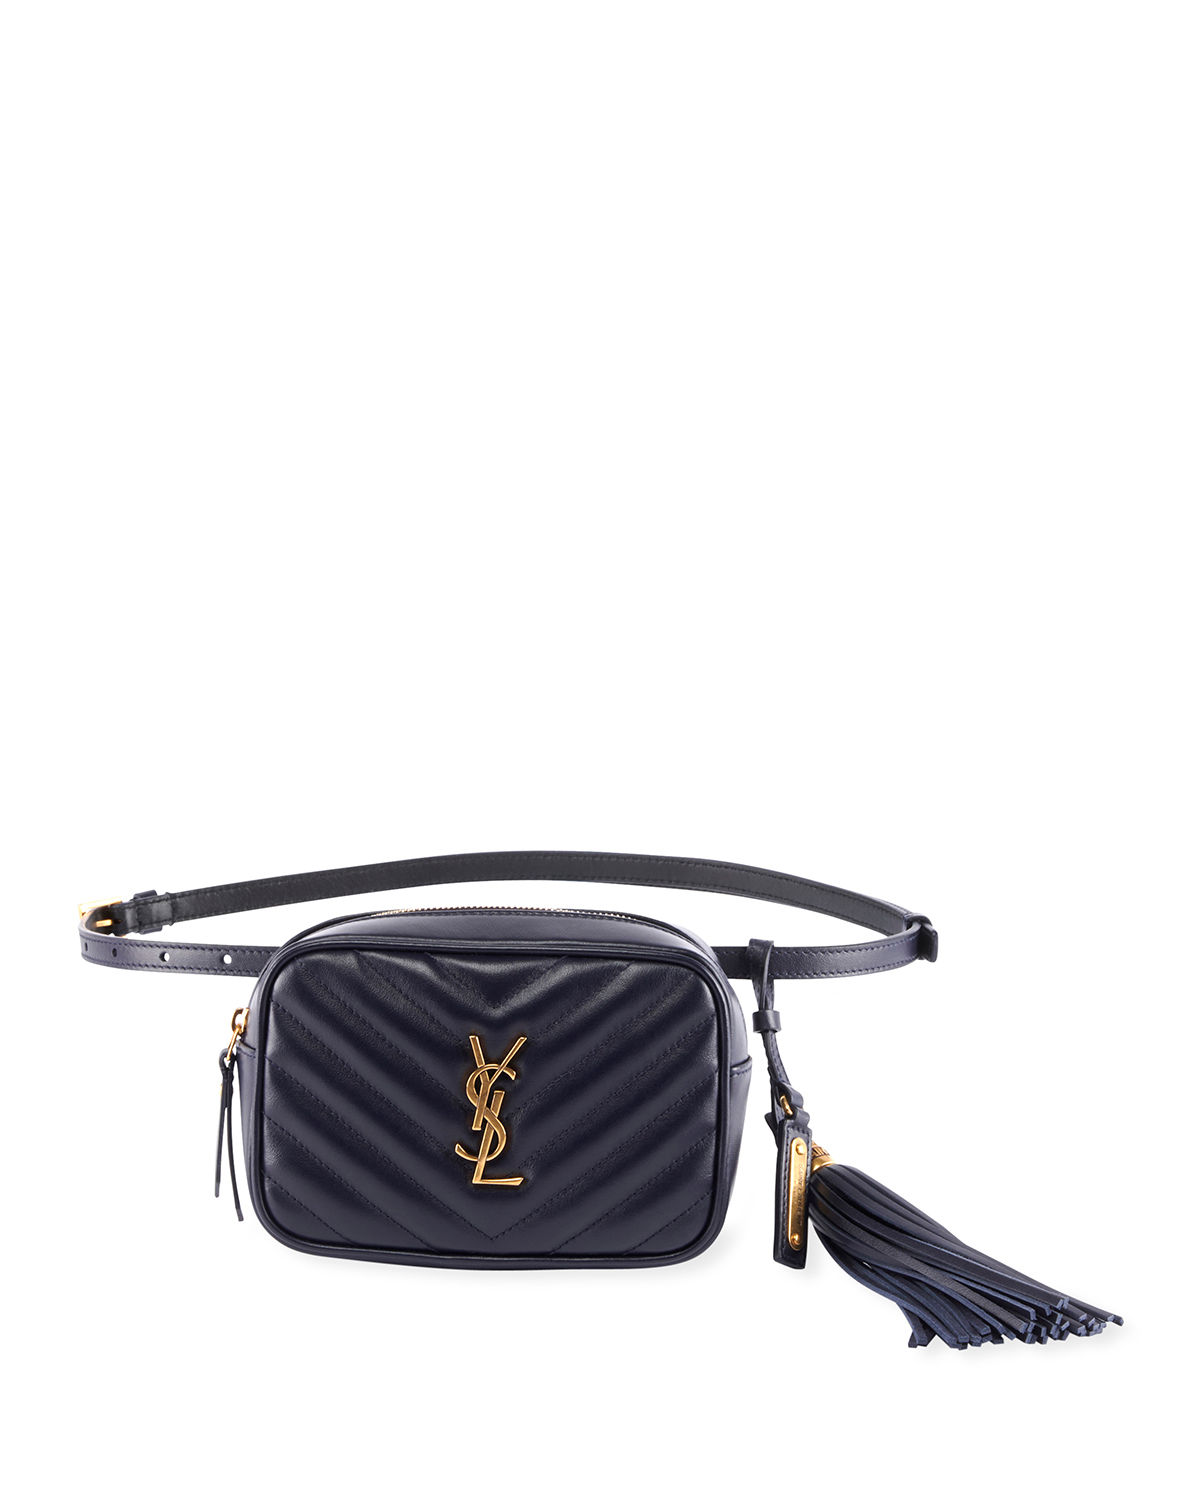 8829317d0 Saint Laurent Lou Monogram Ysl Quilted Leather Belt Bag In Navy ...